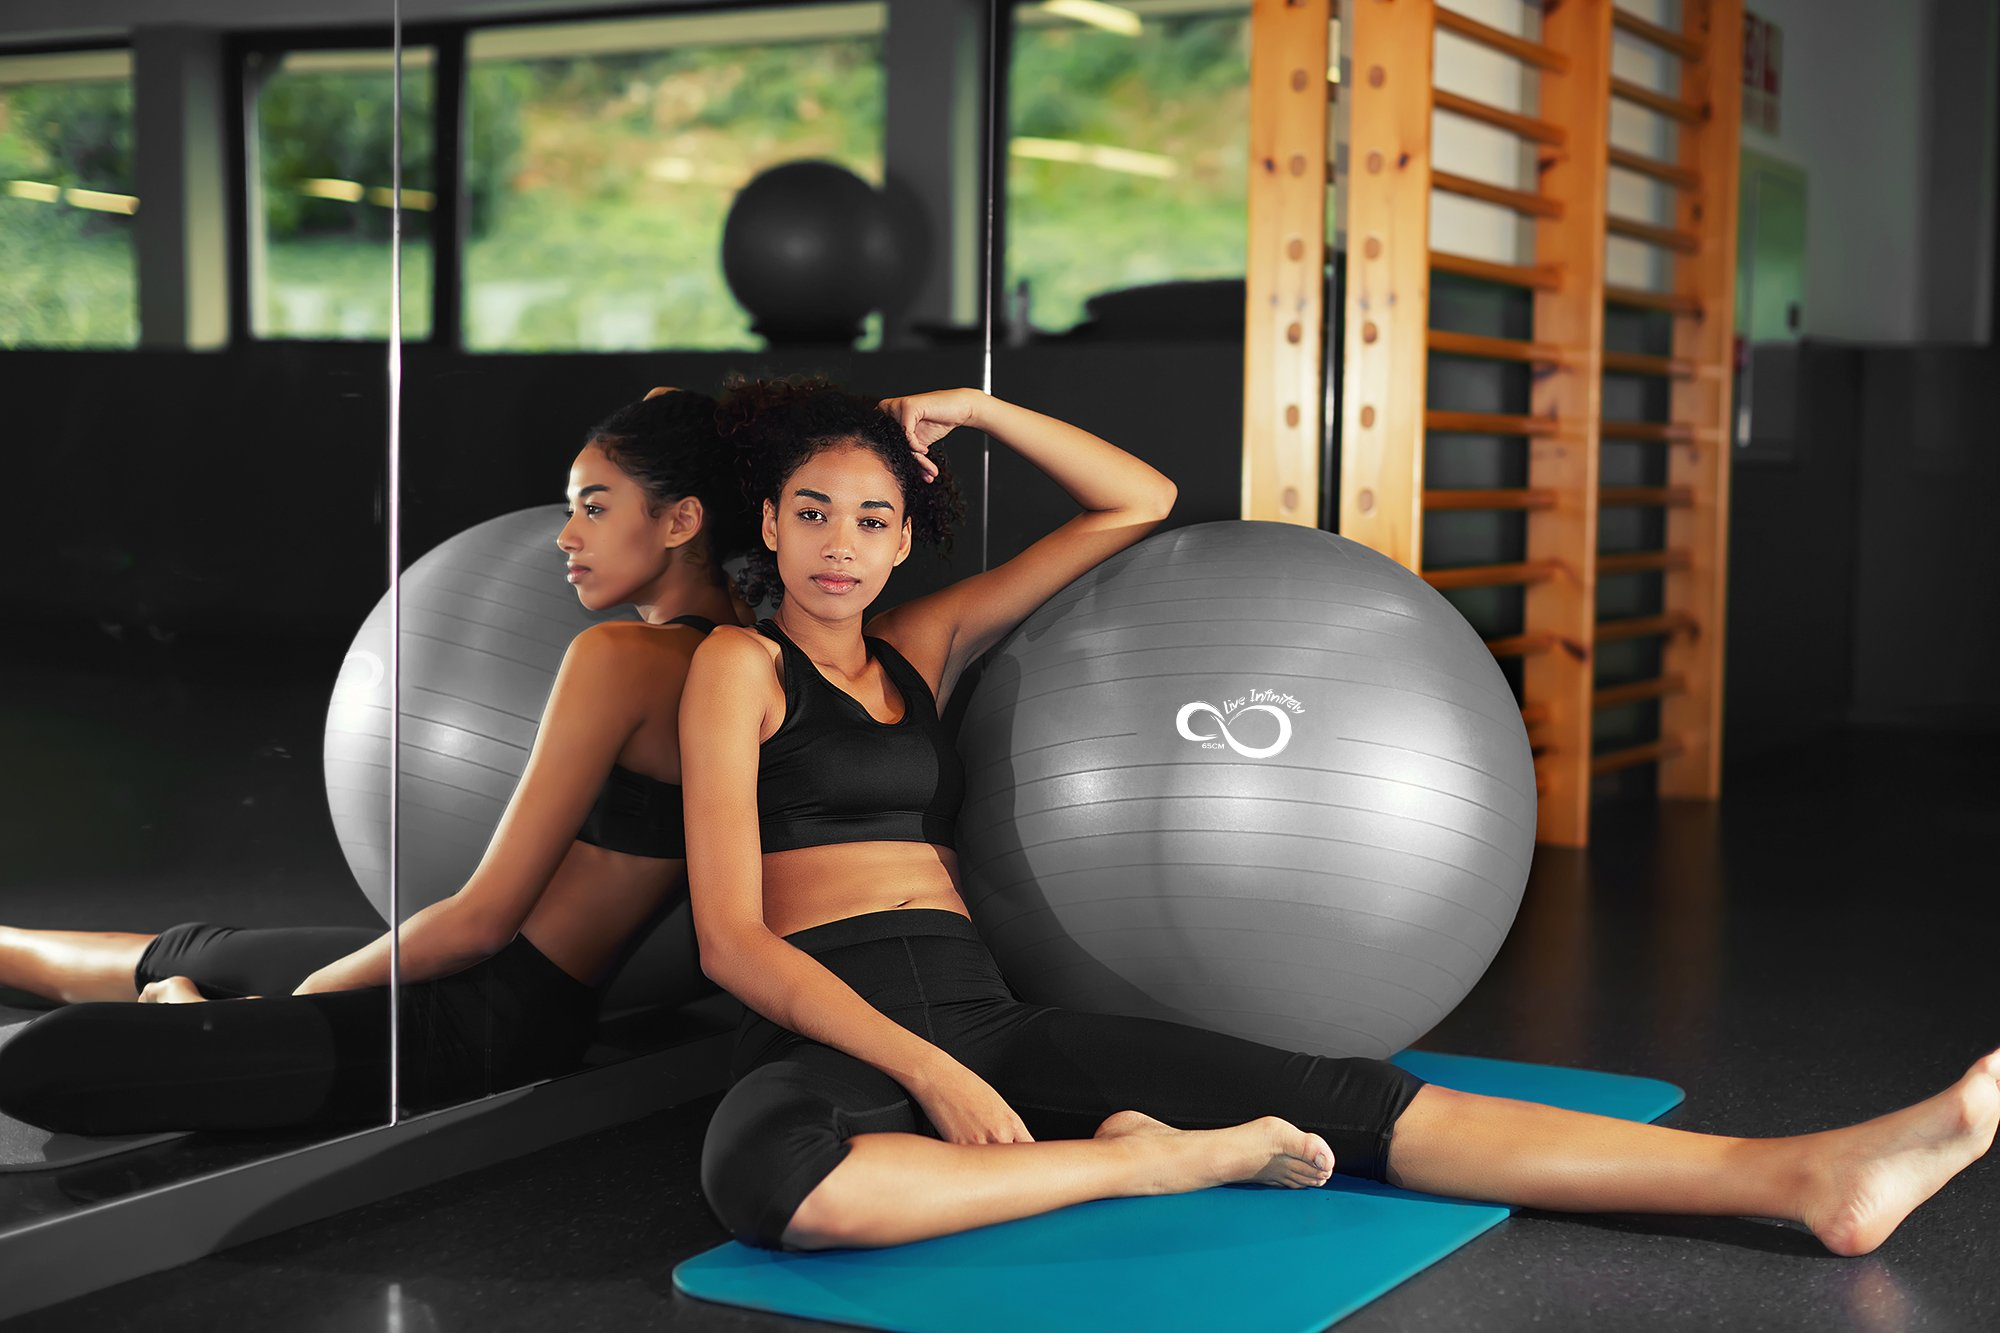 Exercise Ball -Professional Grade Exercise Equipment Anti Burst Tested with Hand Pump- Supports 2200lbs- Includes Workout Guide Access- 55cm/65cm/75cm/85cm Balance Balls (Light Silver, 65 cm) by Live Infinitely (Image #5)